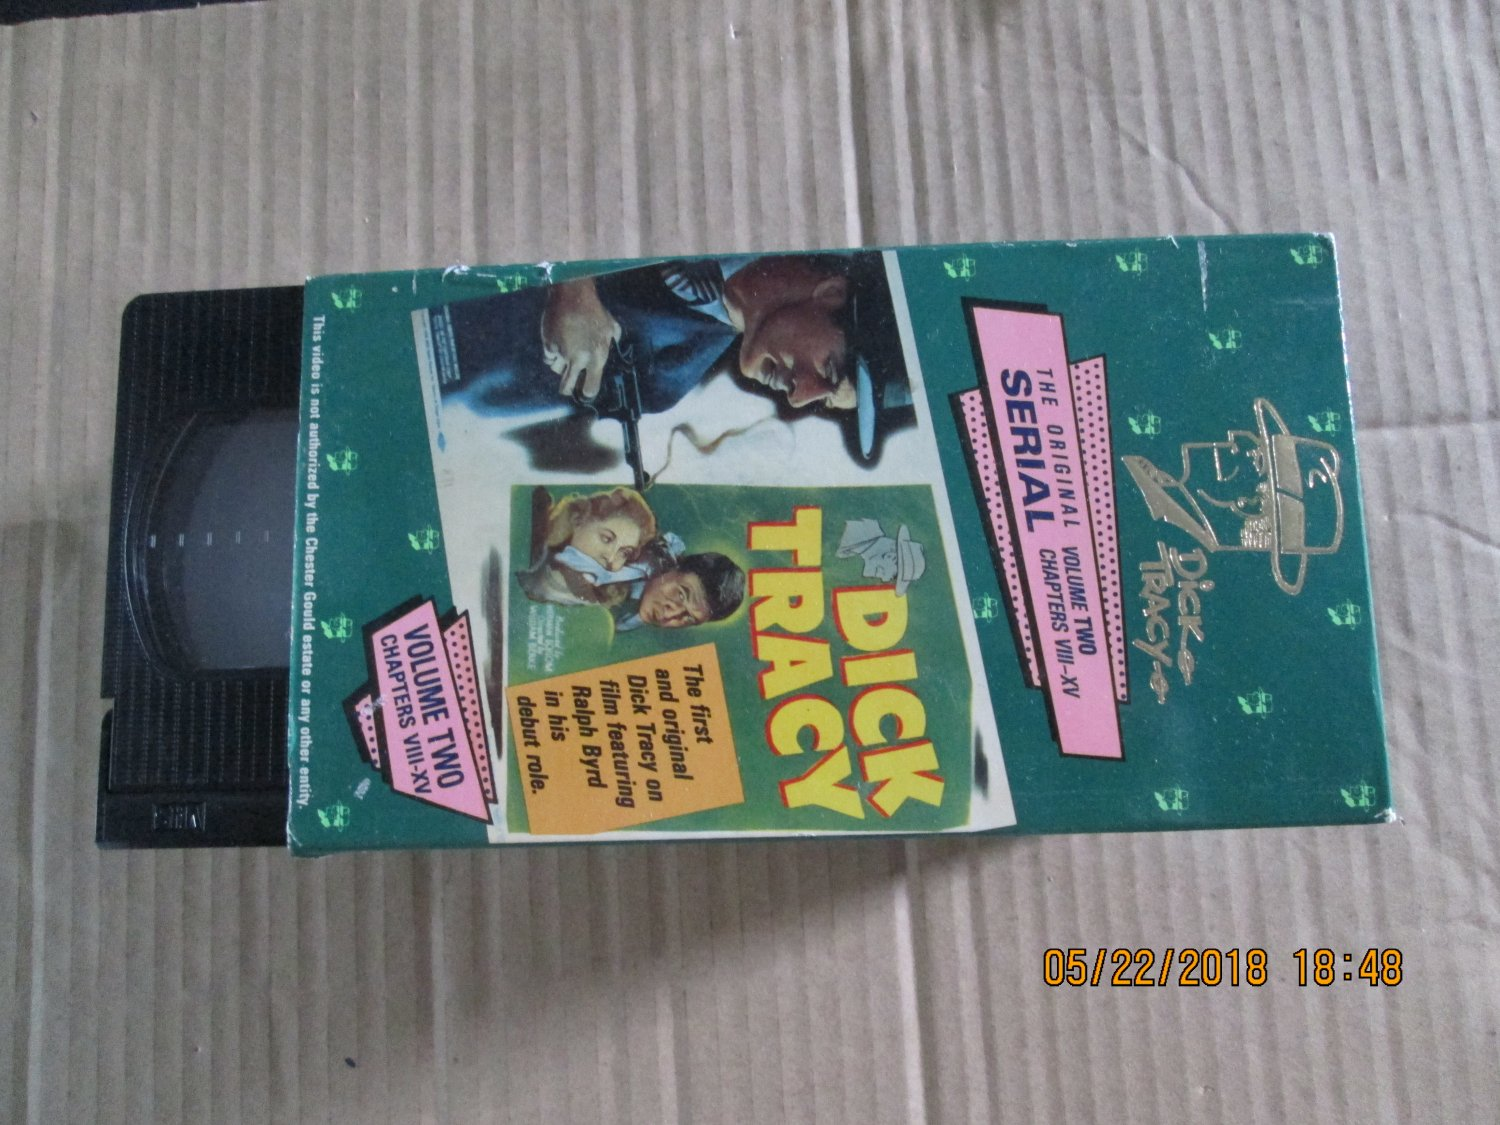 Dick Tracy The Original Serial Volume Two Chapters VIII-XV VHS